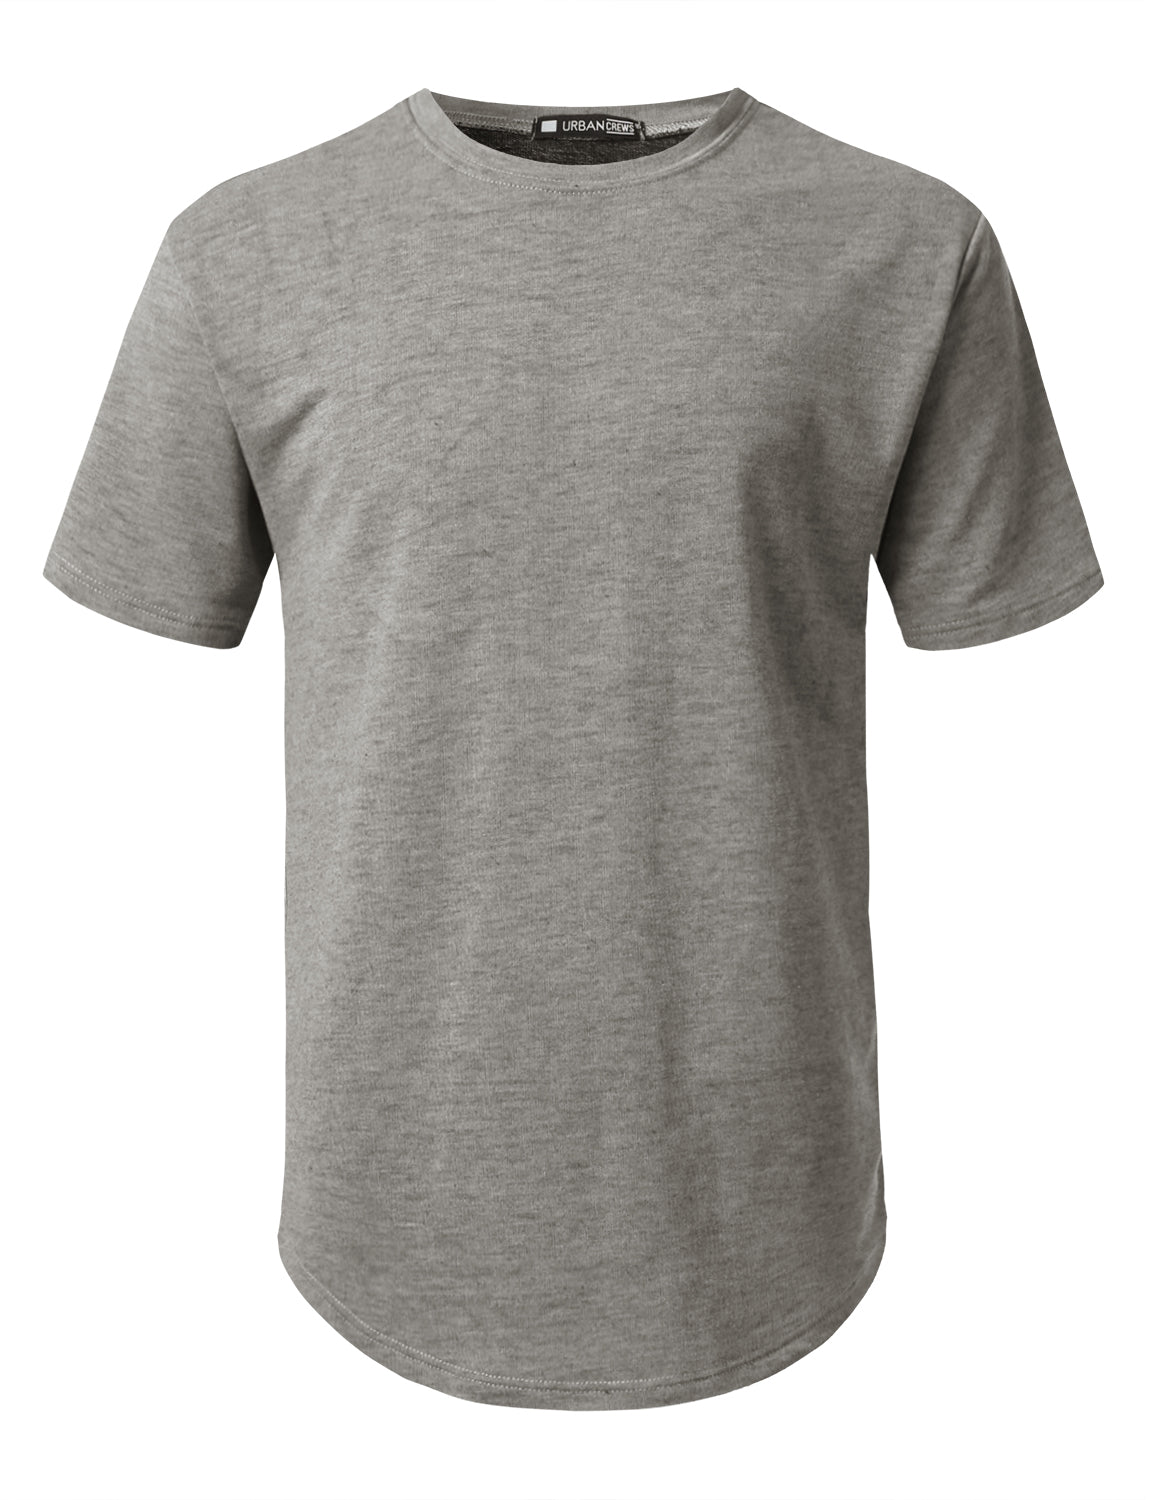 CHARCOAL Dirty Dyed Terry T-shirt - URBANCREWS